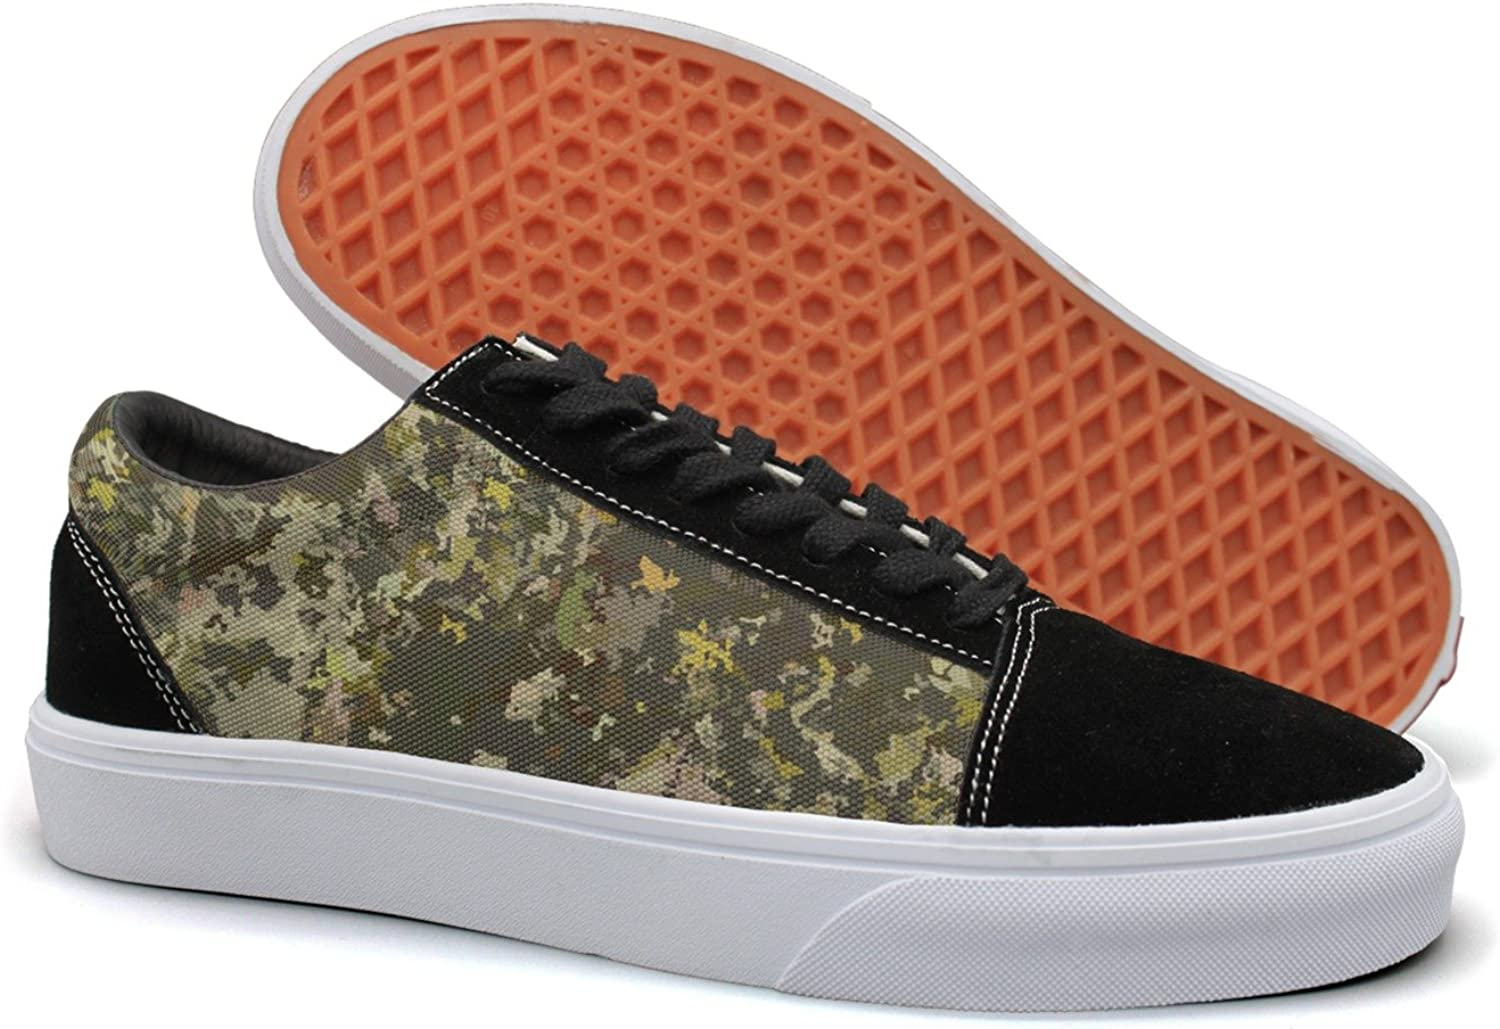 Feenfling Turkey Hunting Camouflage Womens Navy Suede Canvas Tennis shoes Low Top Running shoes